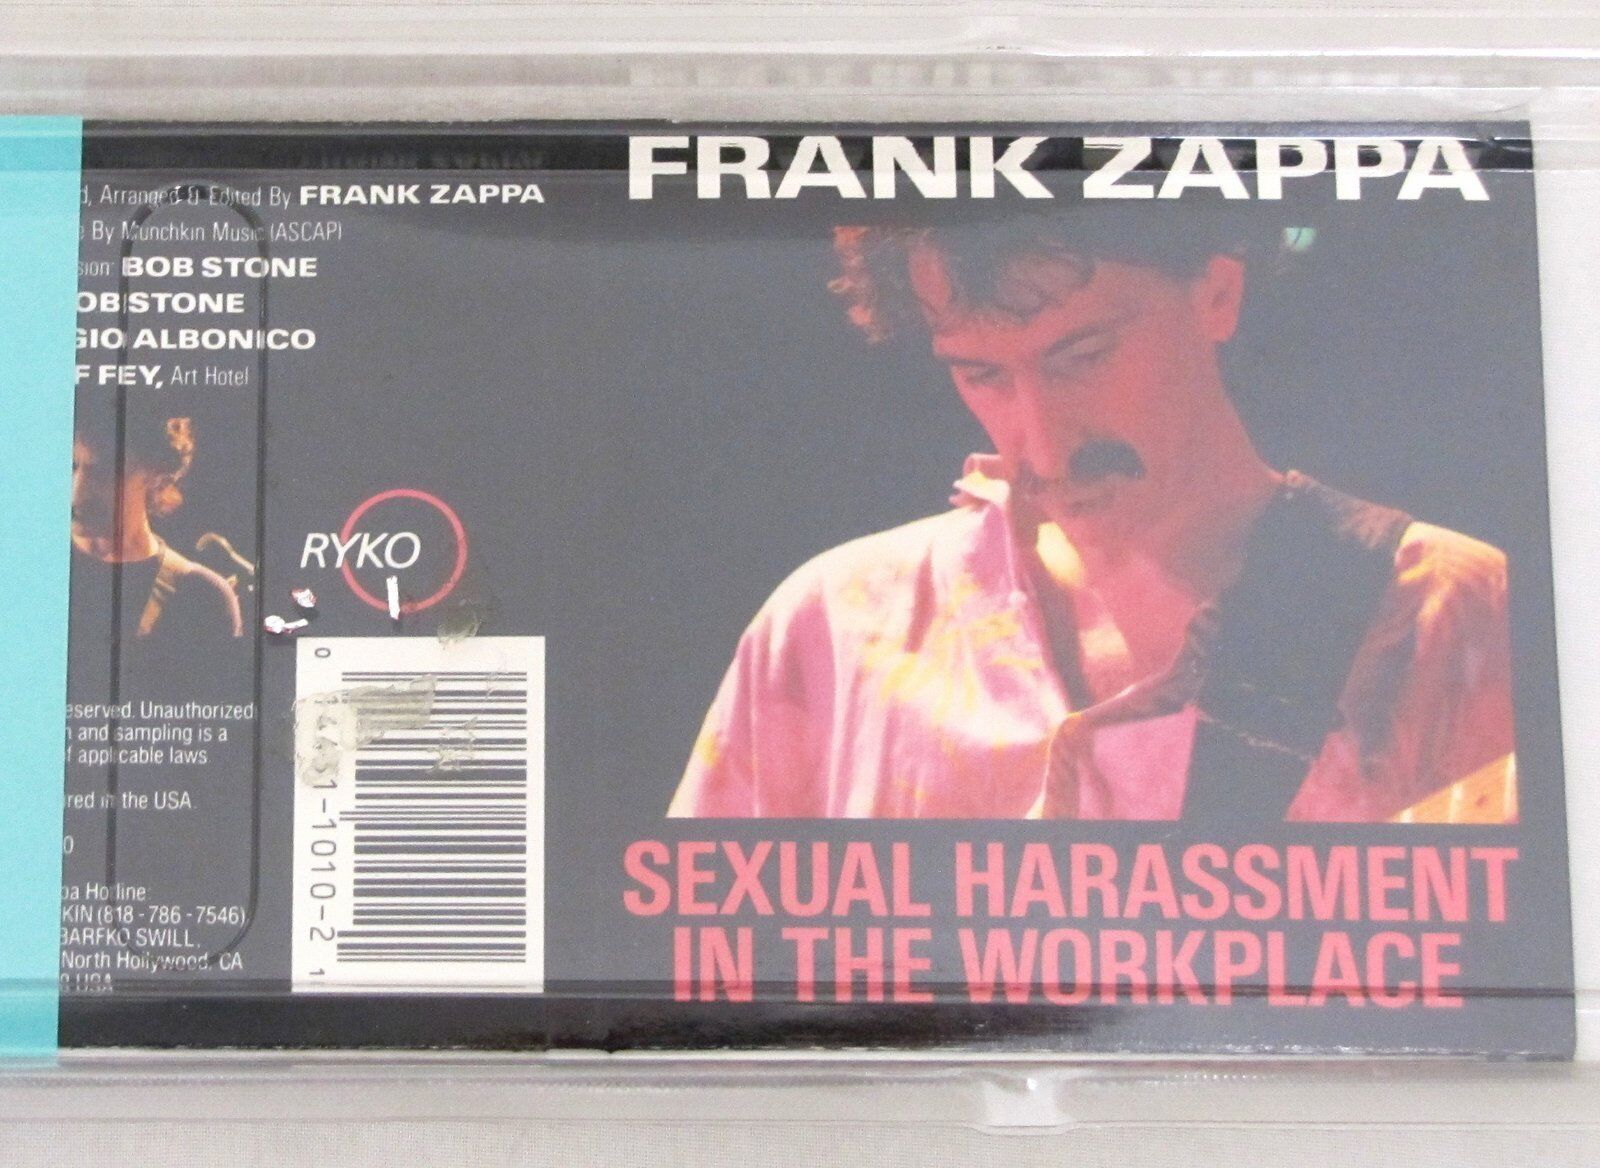 Sexual harassment in the workplace zappa search